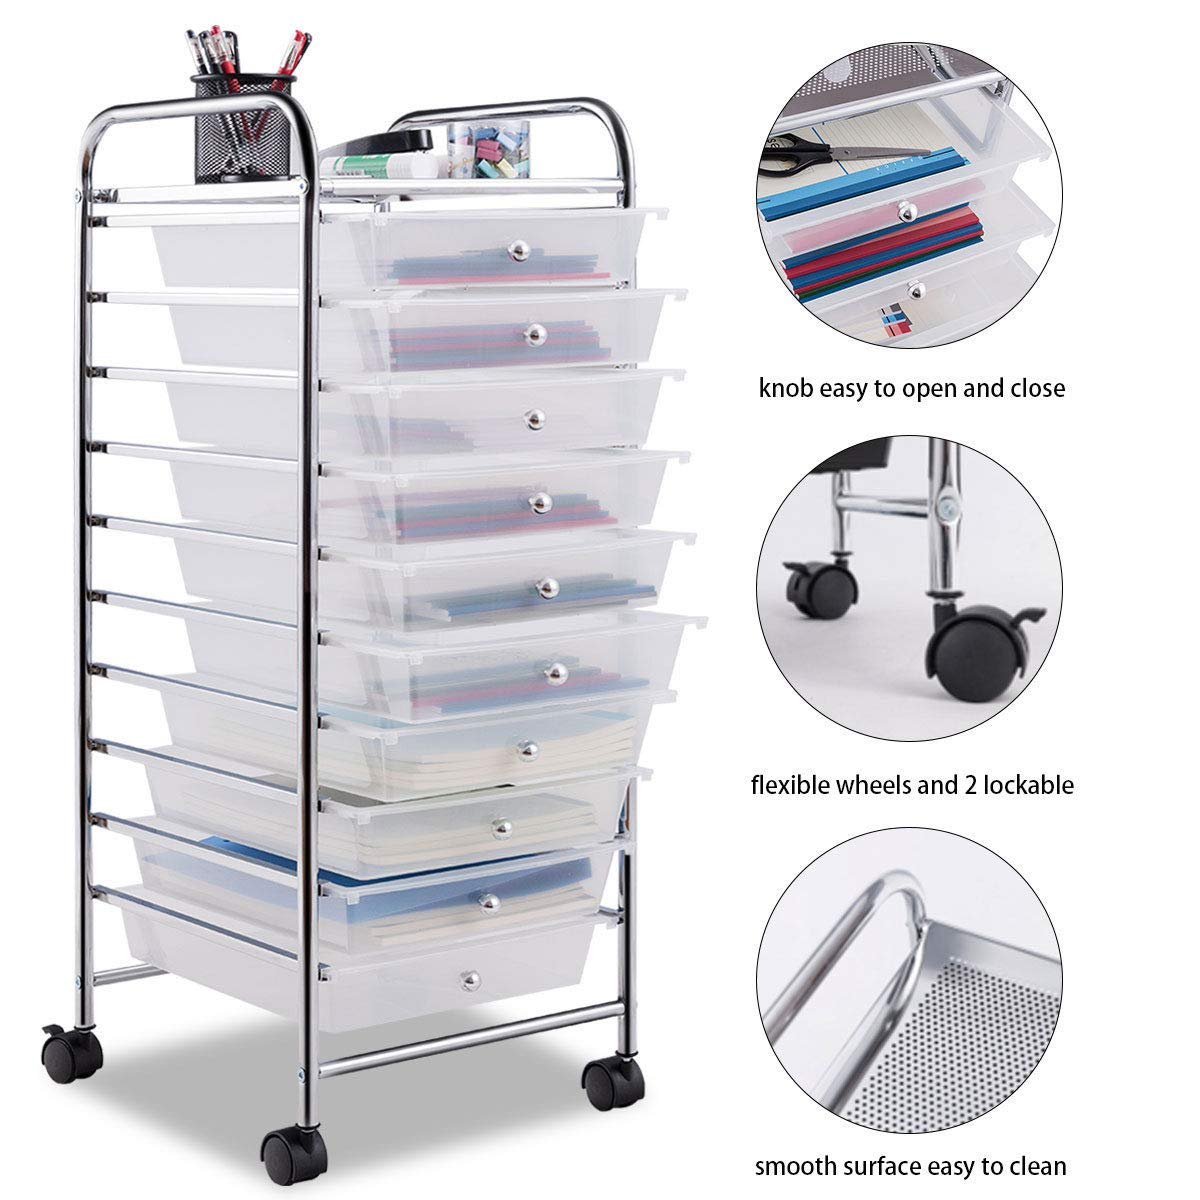 Giantex 10 Drawer Rolling Storage Cart Scrapbook Paper Office School Organizer (Clear) by Giantex (Image #4)